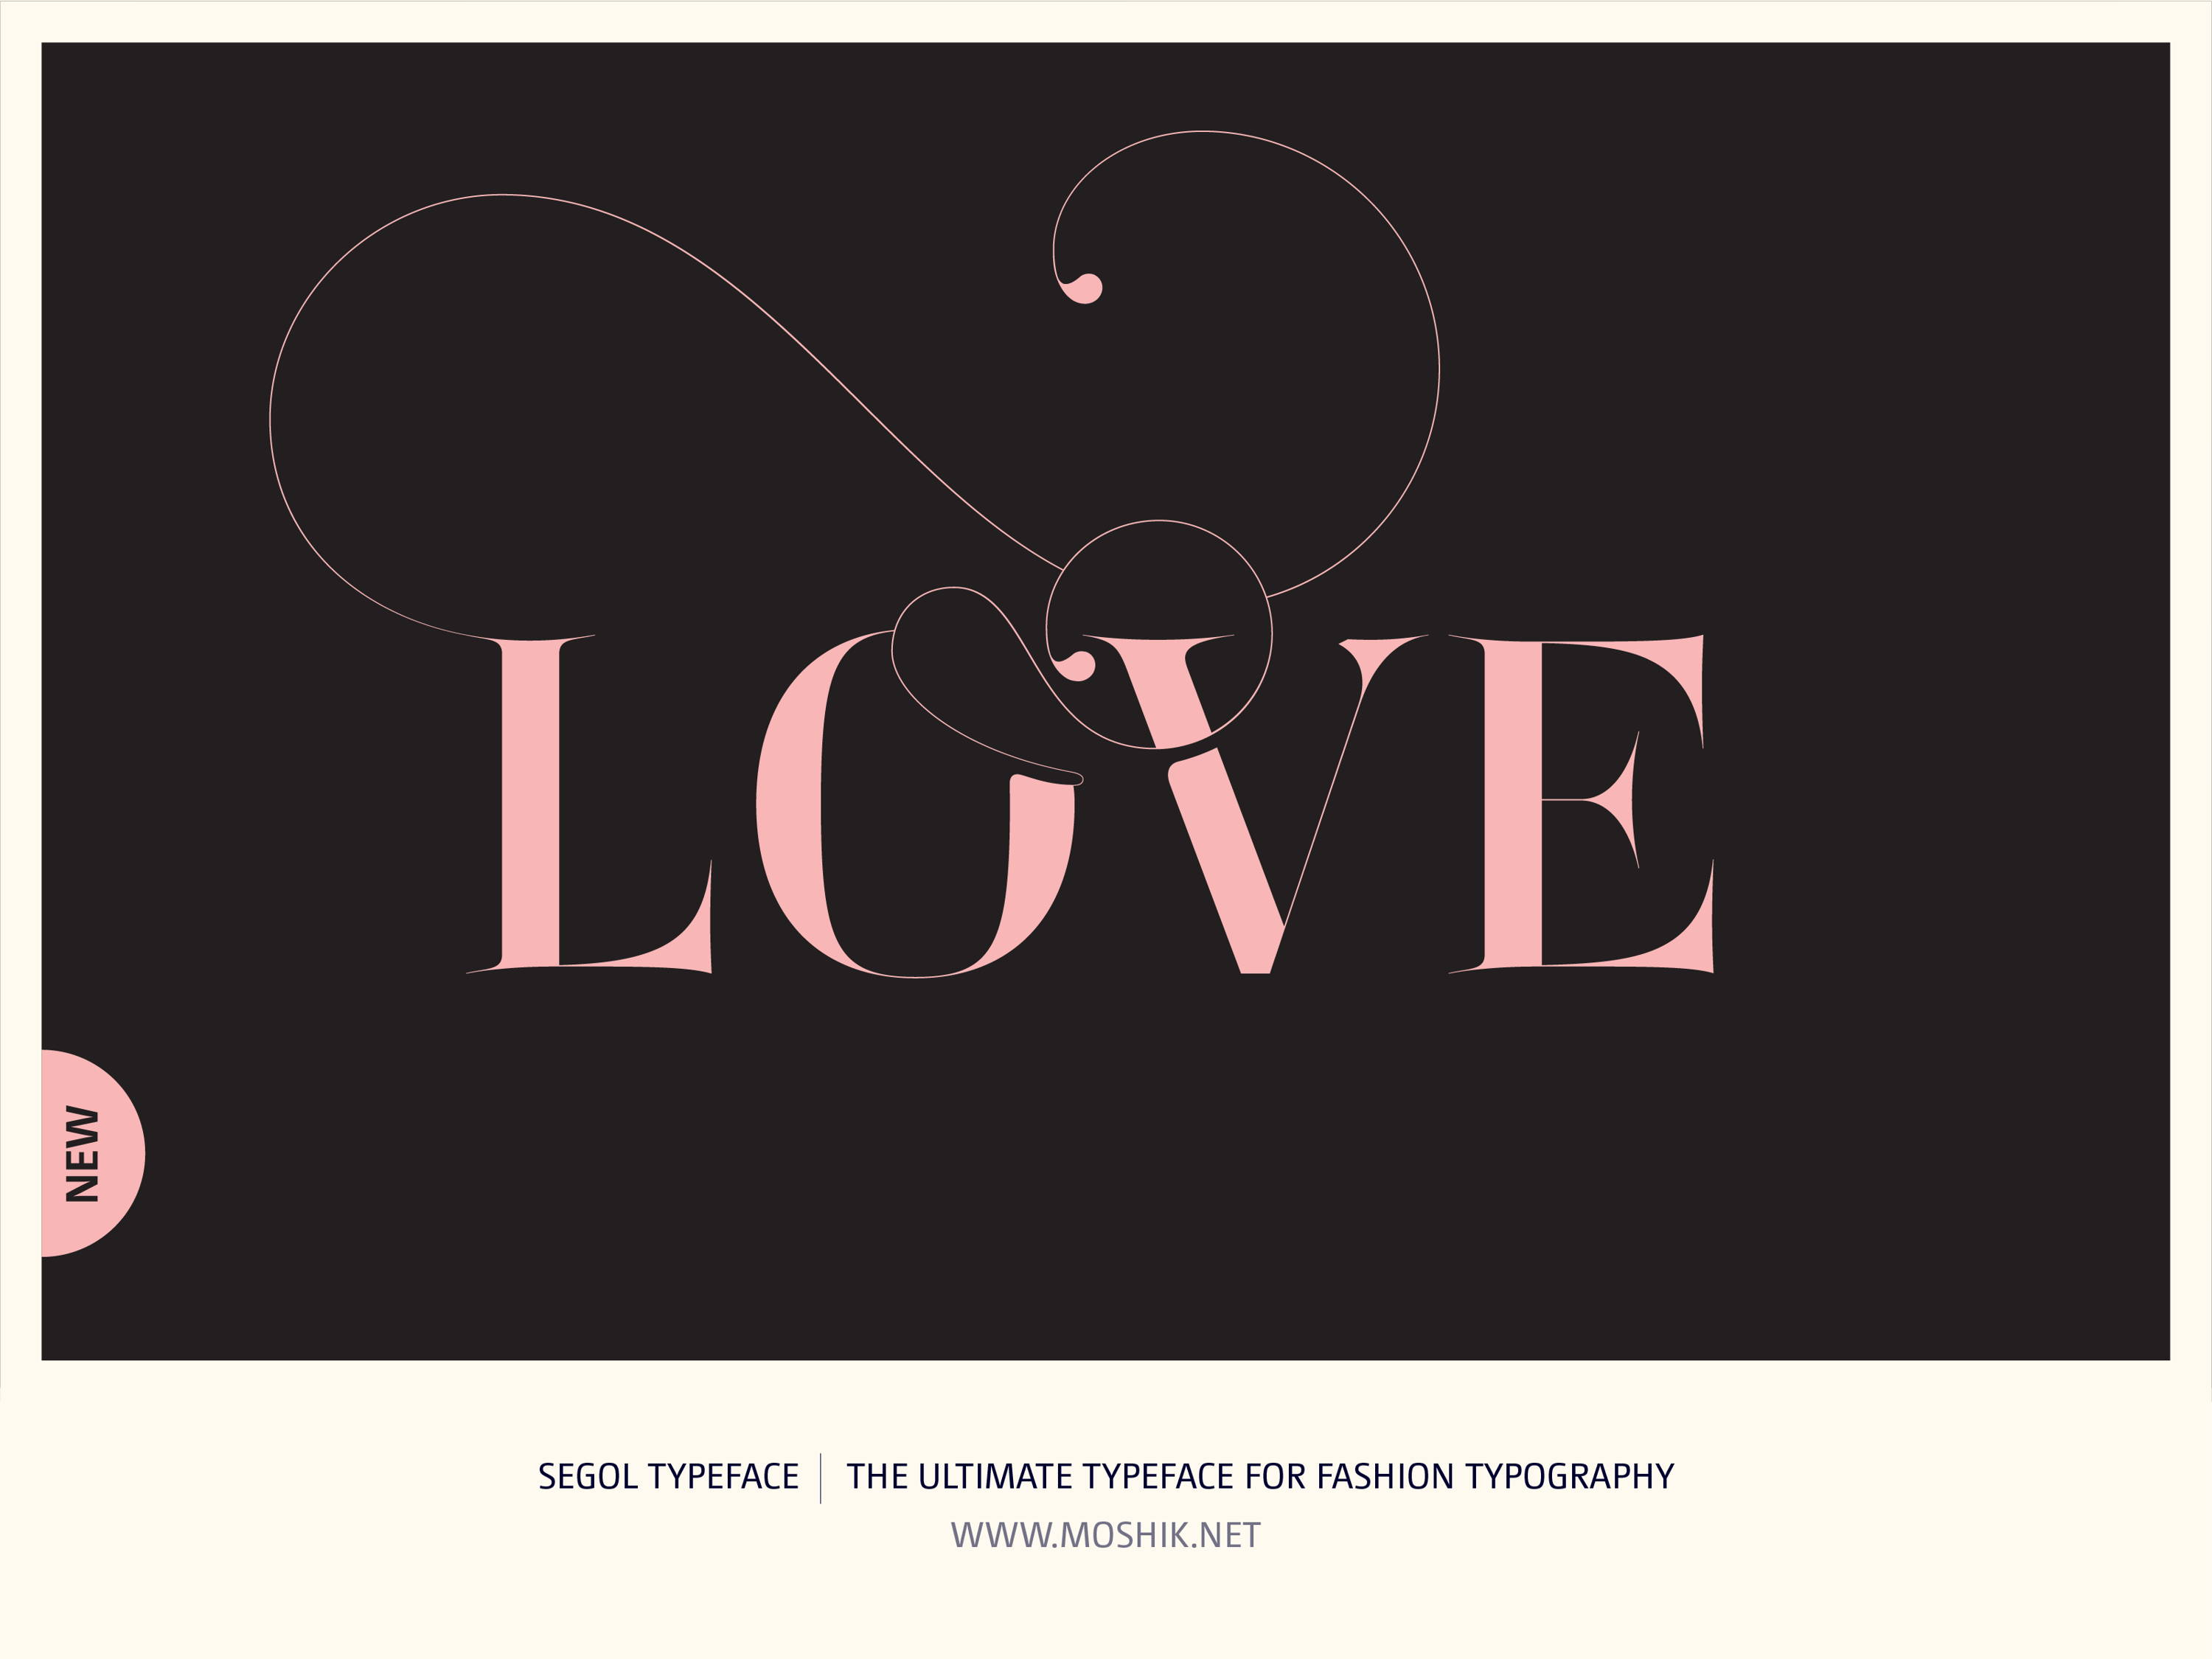 Segol Typeface, Love is in the air, Moshik Nadav, Fashion fonts, Fashion Typography, Vogue fonts, Fashion logos, Sexy logos, sexy fonts, custom fonts, custom fashion logo, Best fonts 2021, Must have fonts 2021, valentines, typography, Pink